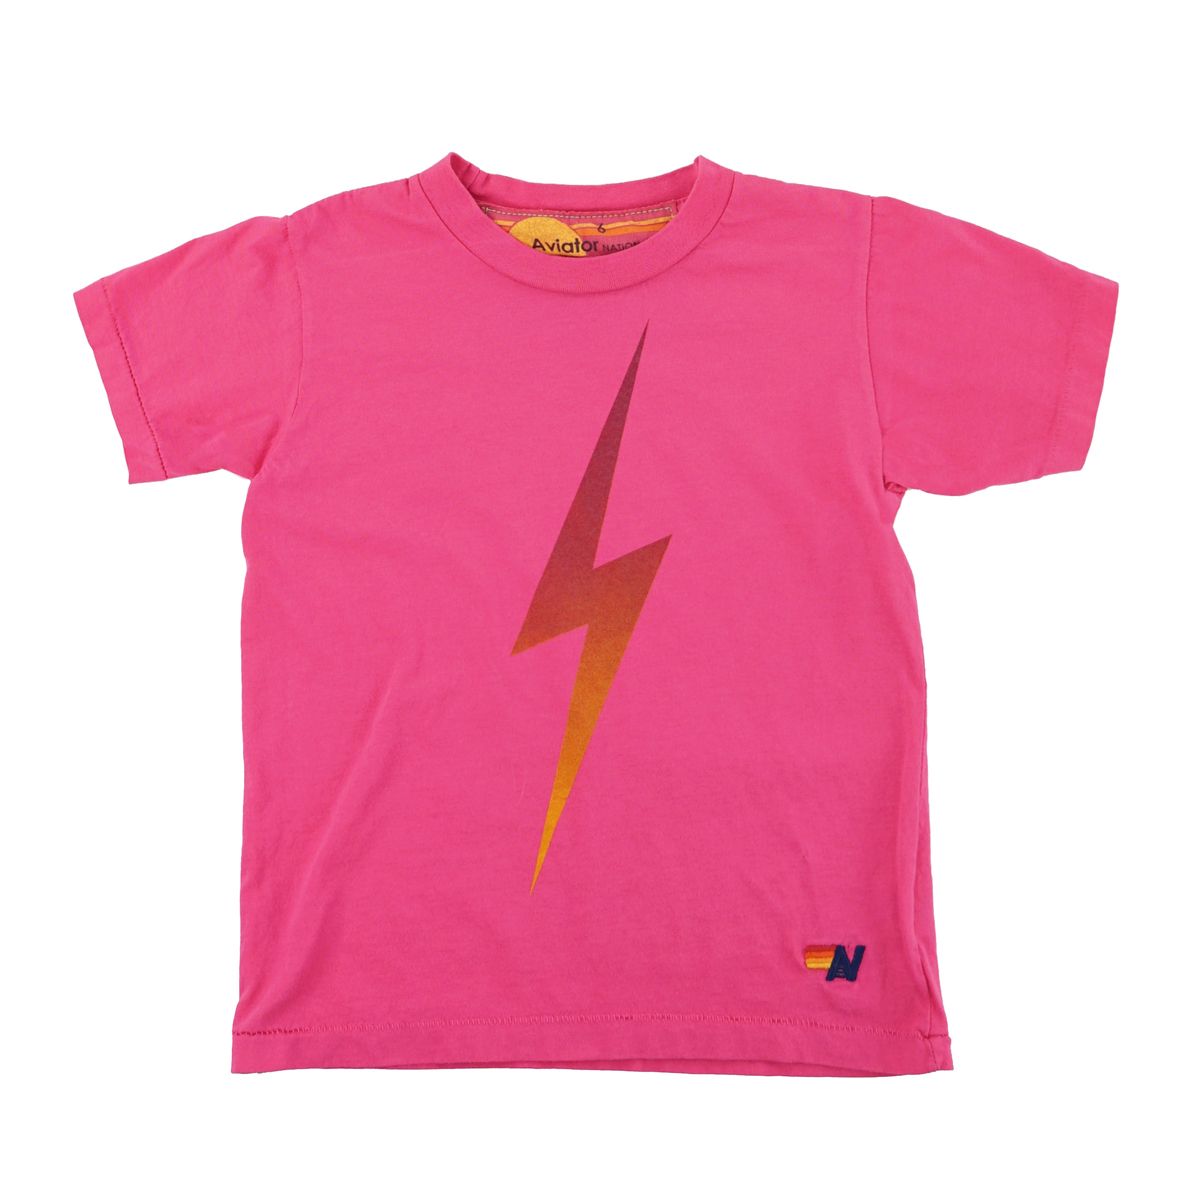 Aviator Nation Bolt Fade T-Shirt in Rose